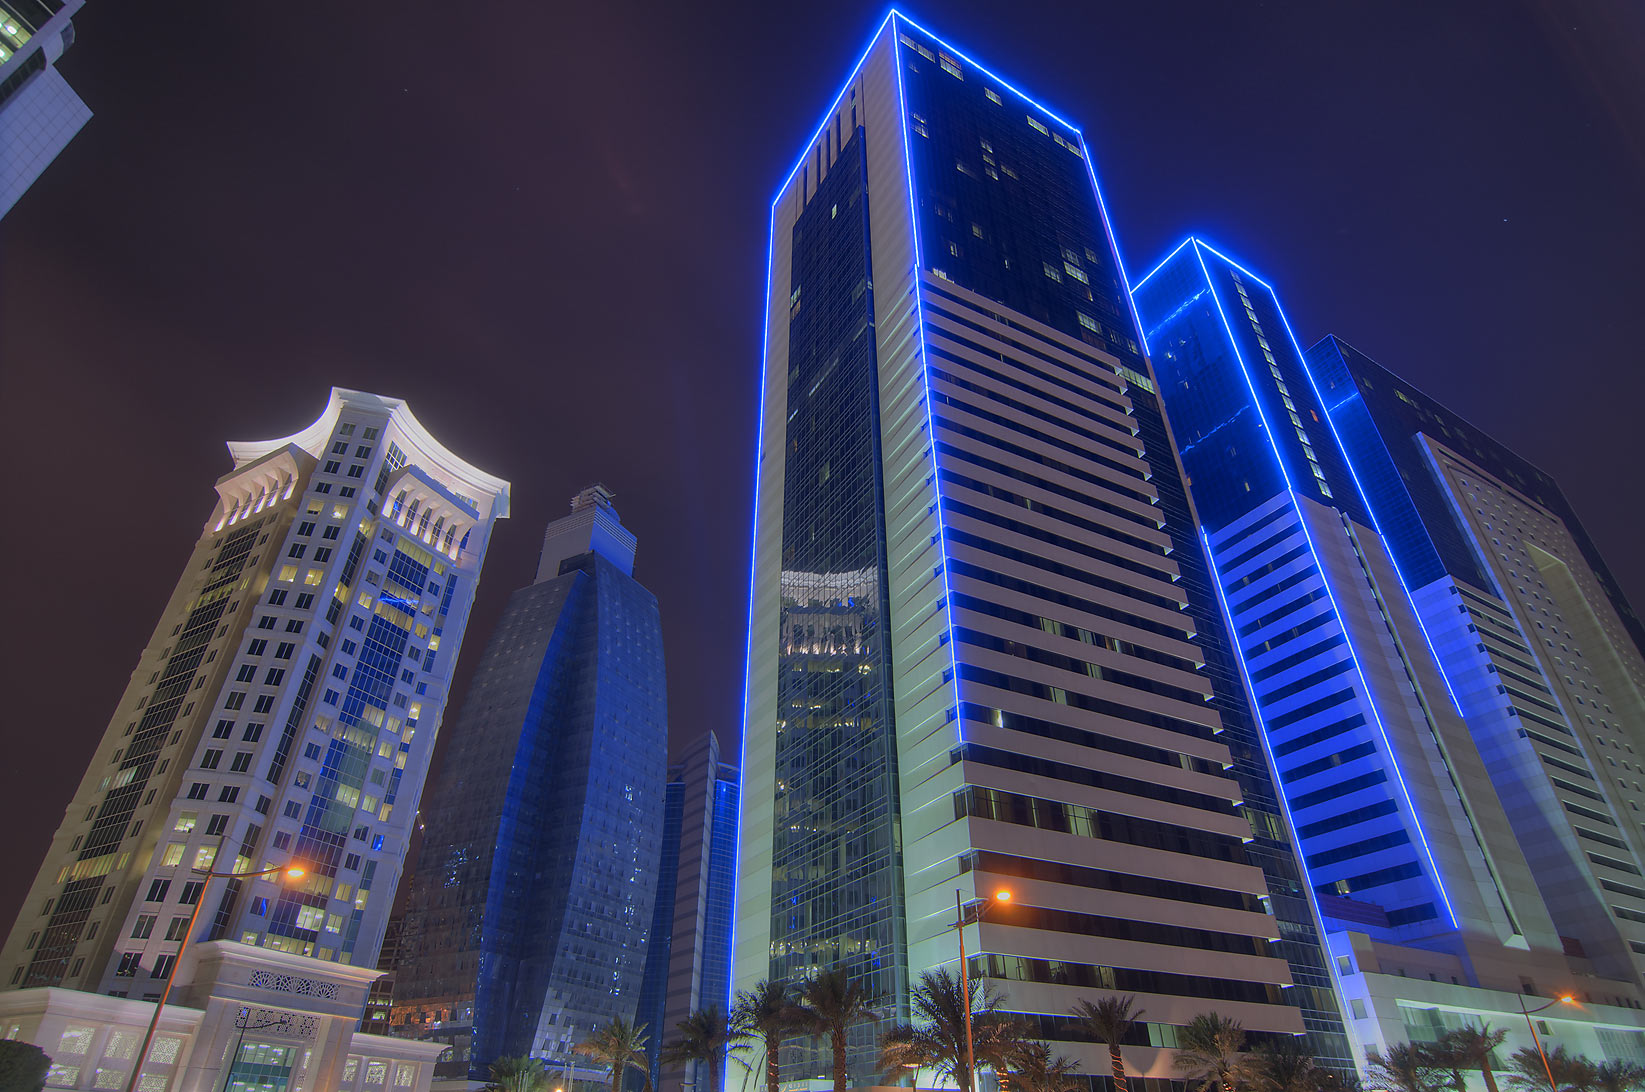 Al Qassar Tower and Ezdan Hotel in West Bay. Doha, Qatar